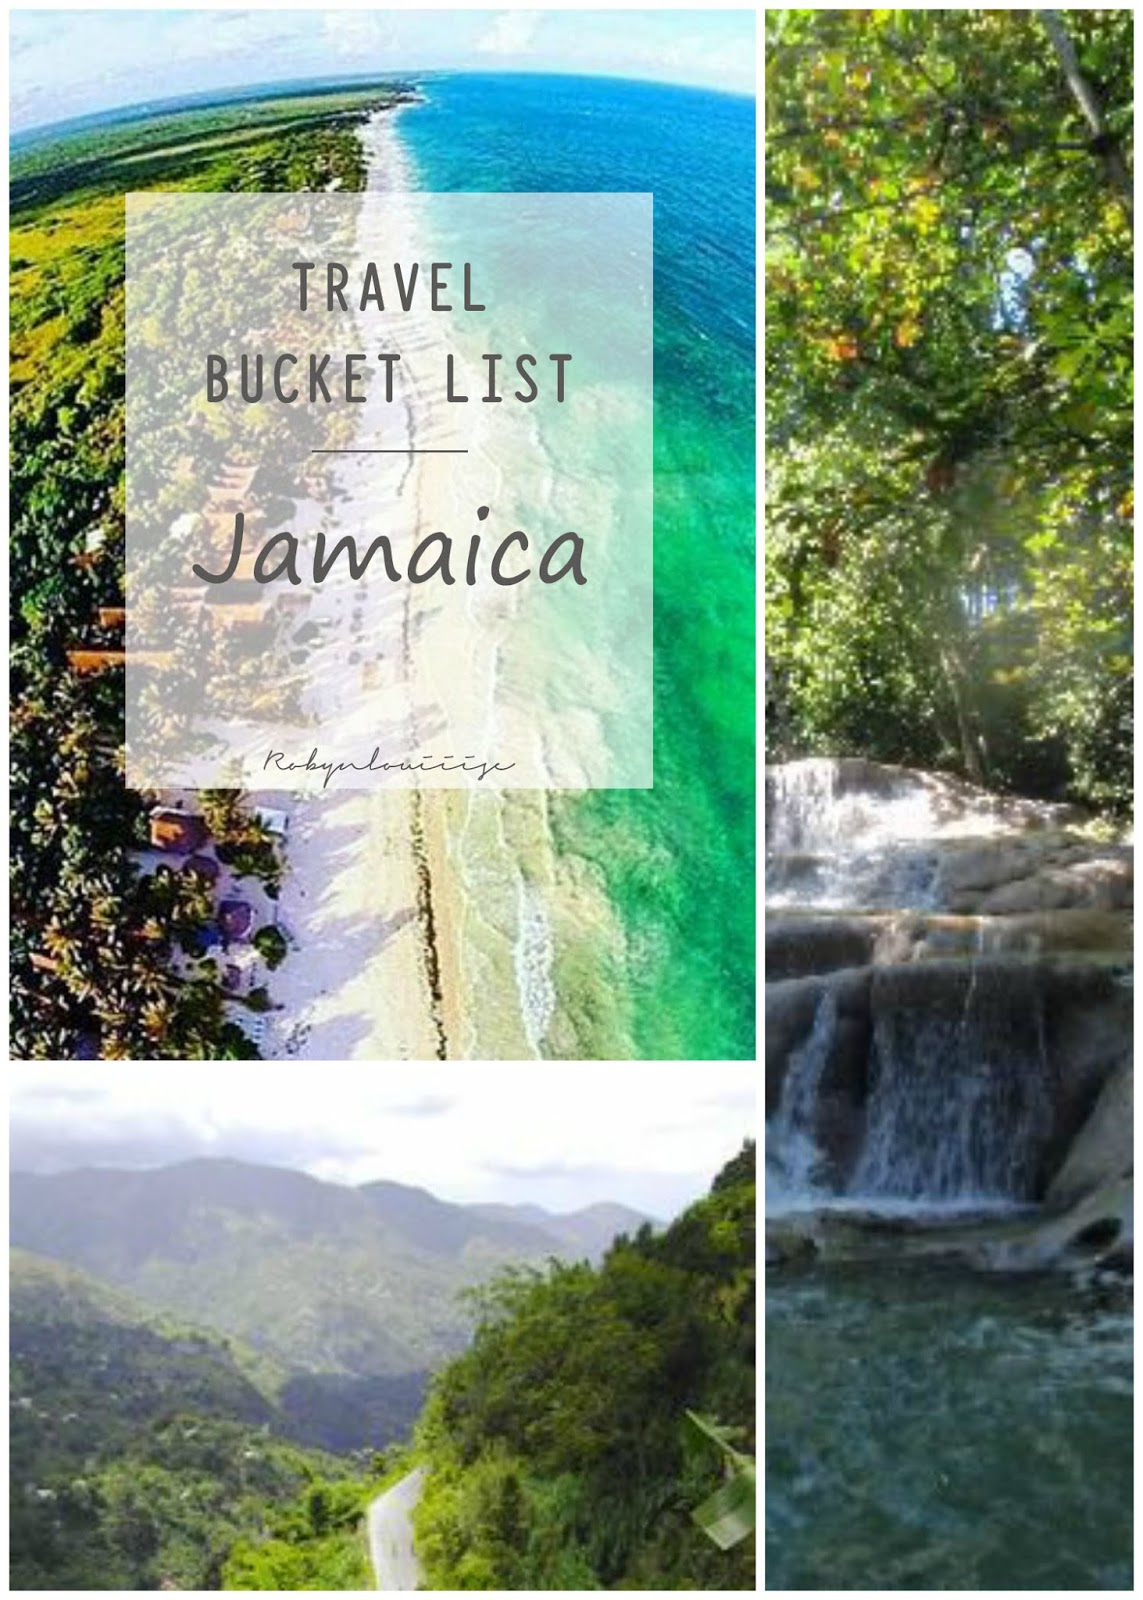 Bucket List, Jamaica, Travel